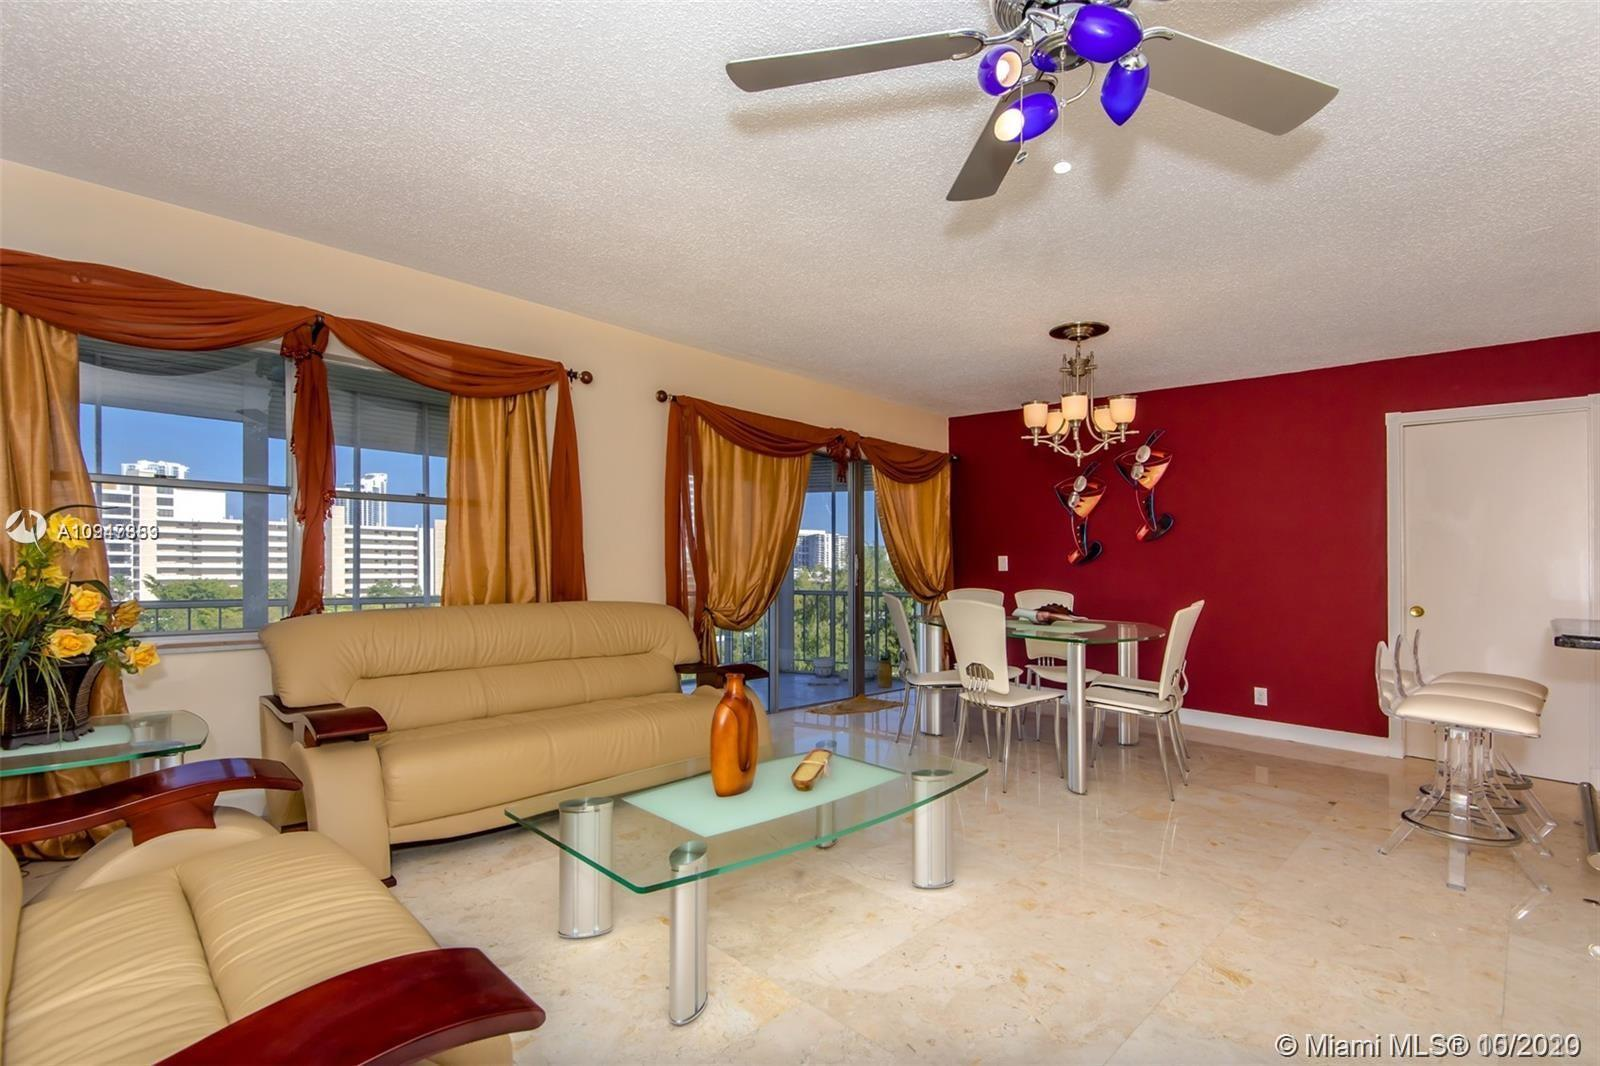 2 BEDROOMS 2 BATHROOMS  PENTHOUSE WITH MARBLE FLOORS THROUGHOUT. UPDATED KITCHEN WITH GRANITE COUNTE